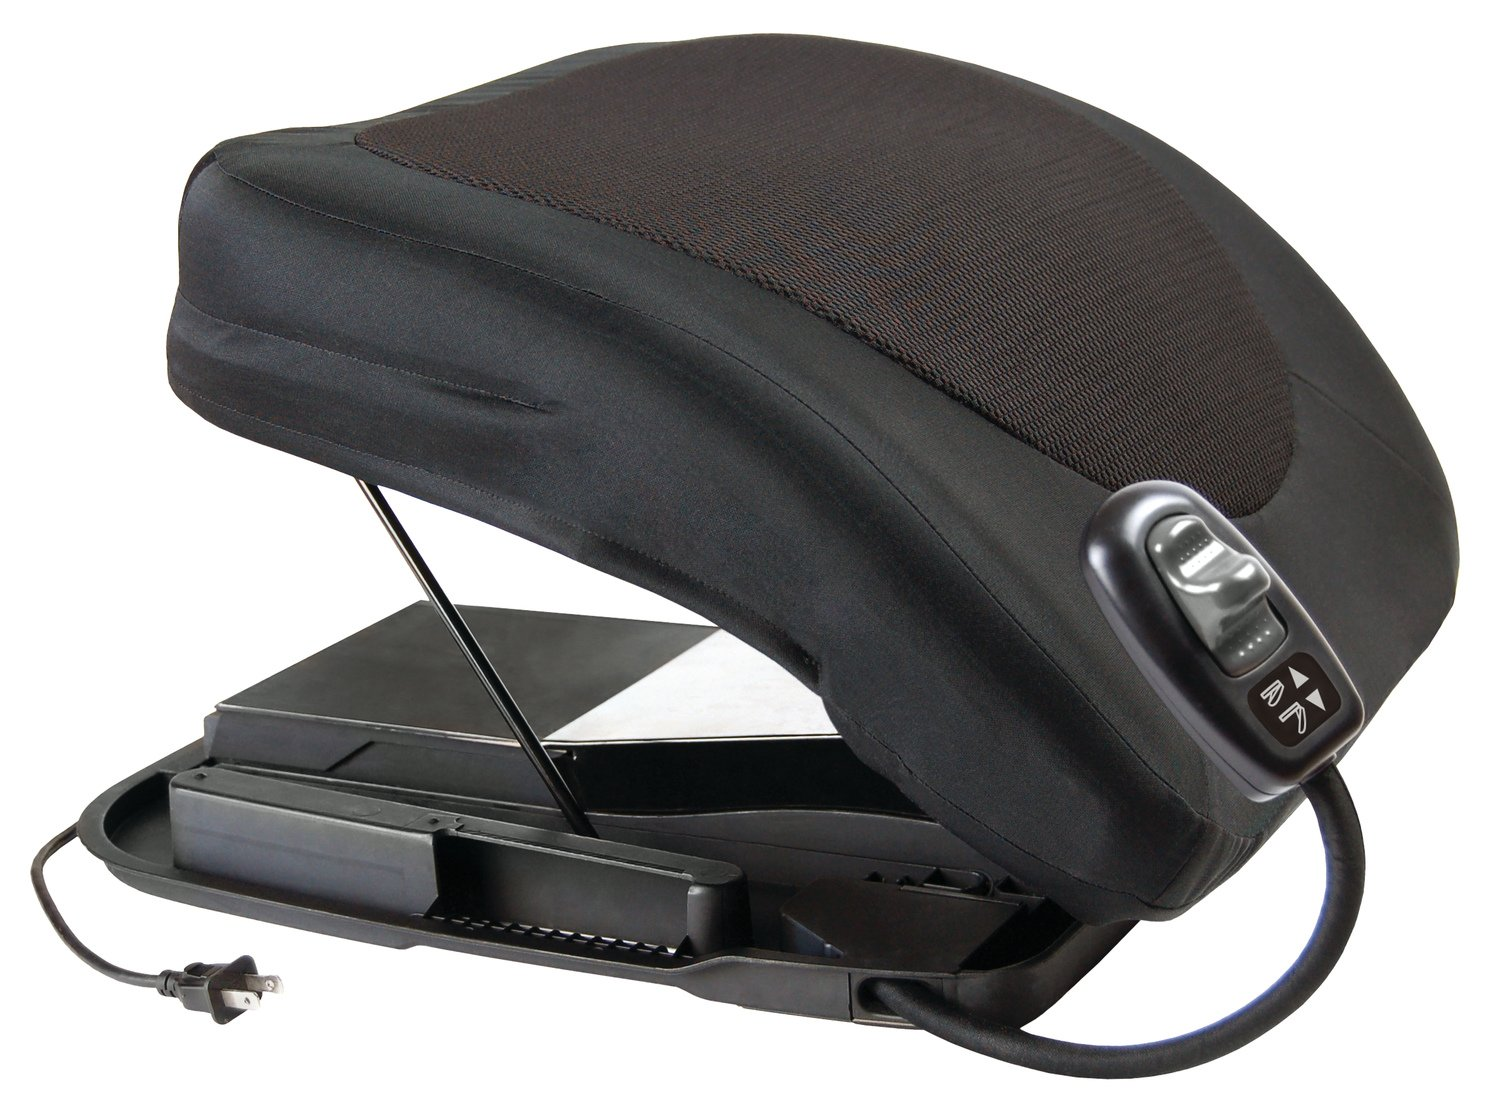 Carex Health Brands Premium Power Lifting Seat, Black, 20 Inches